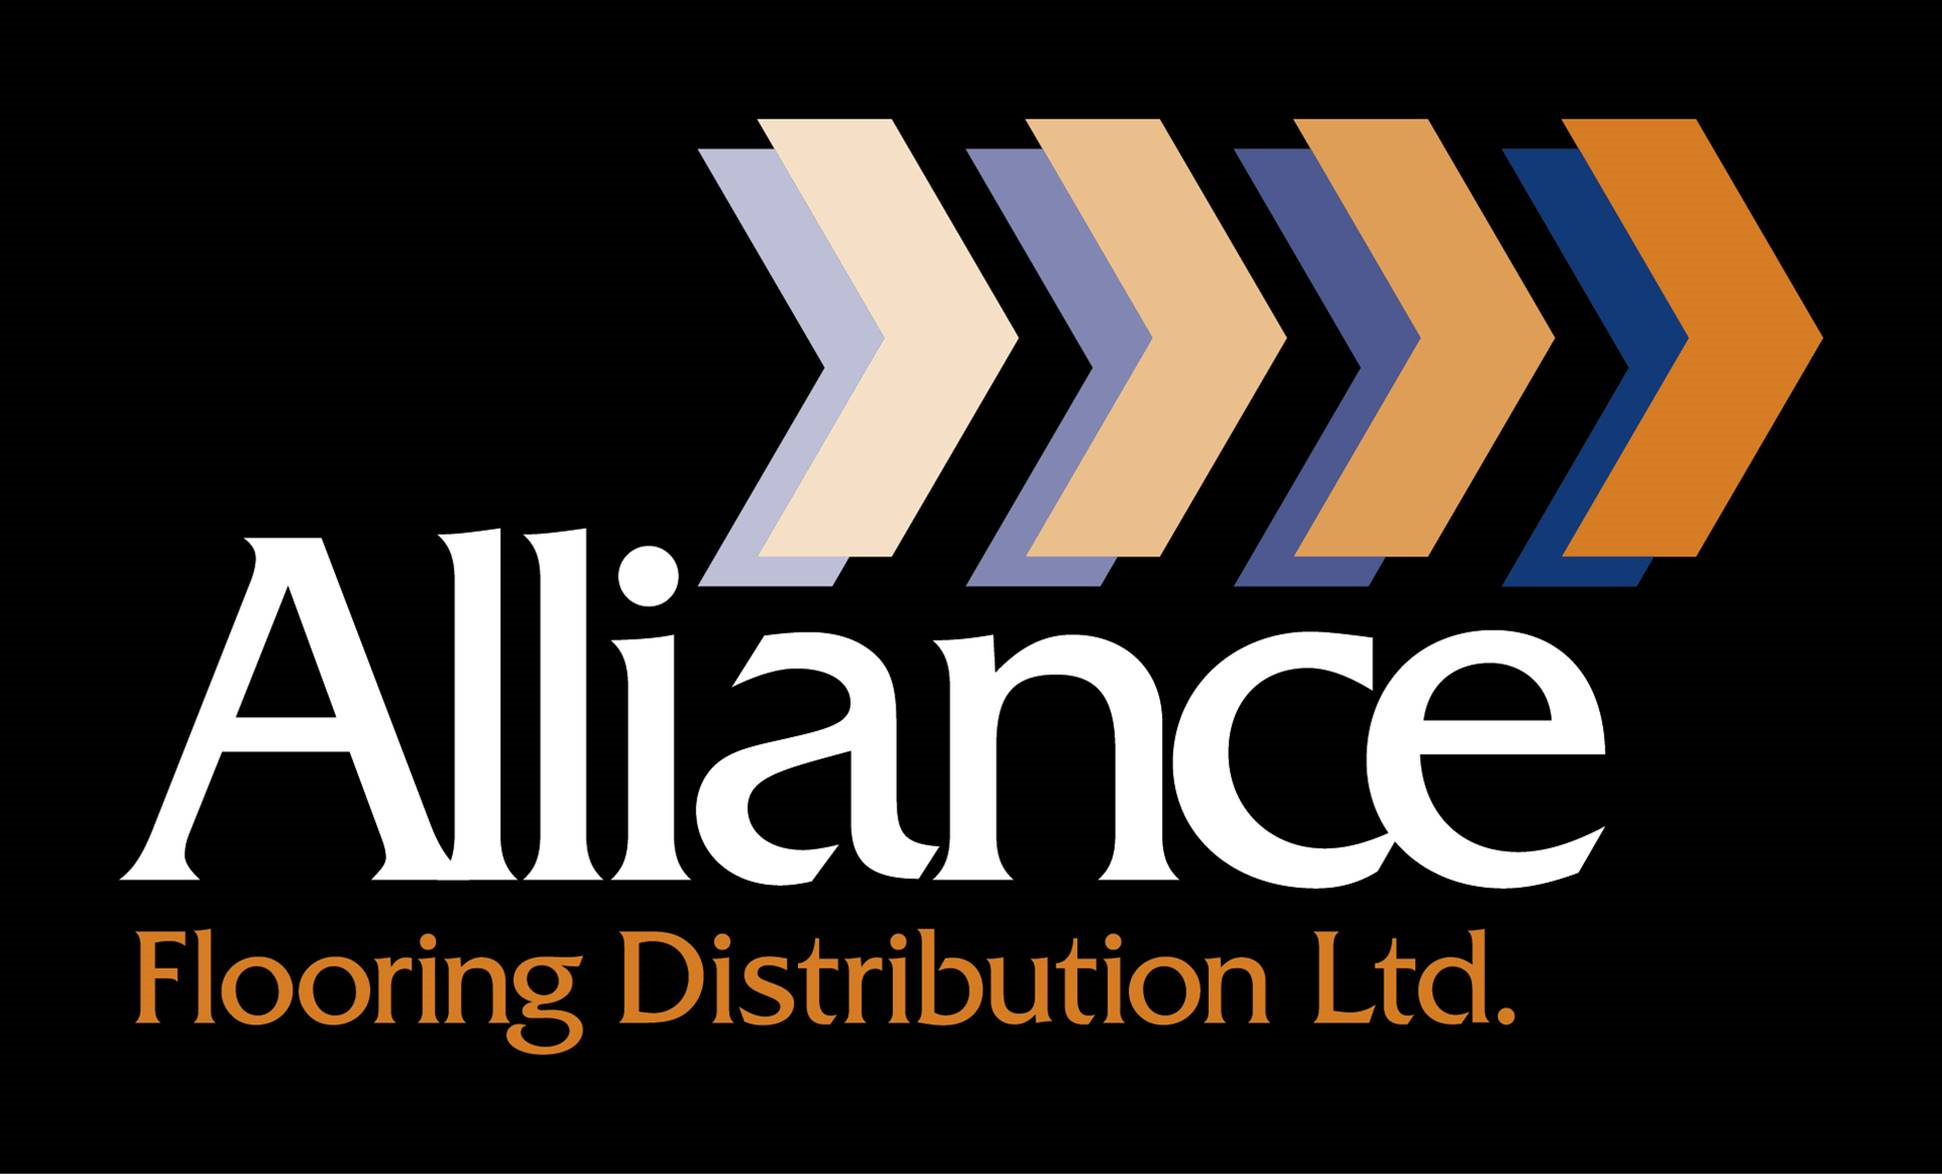 http://quicklinestorage.co.uk/wp-content/uploads/2018/05/Alliance-logo-quickline-storage-racking.png